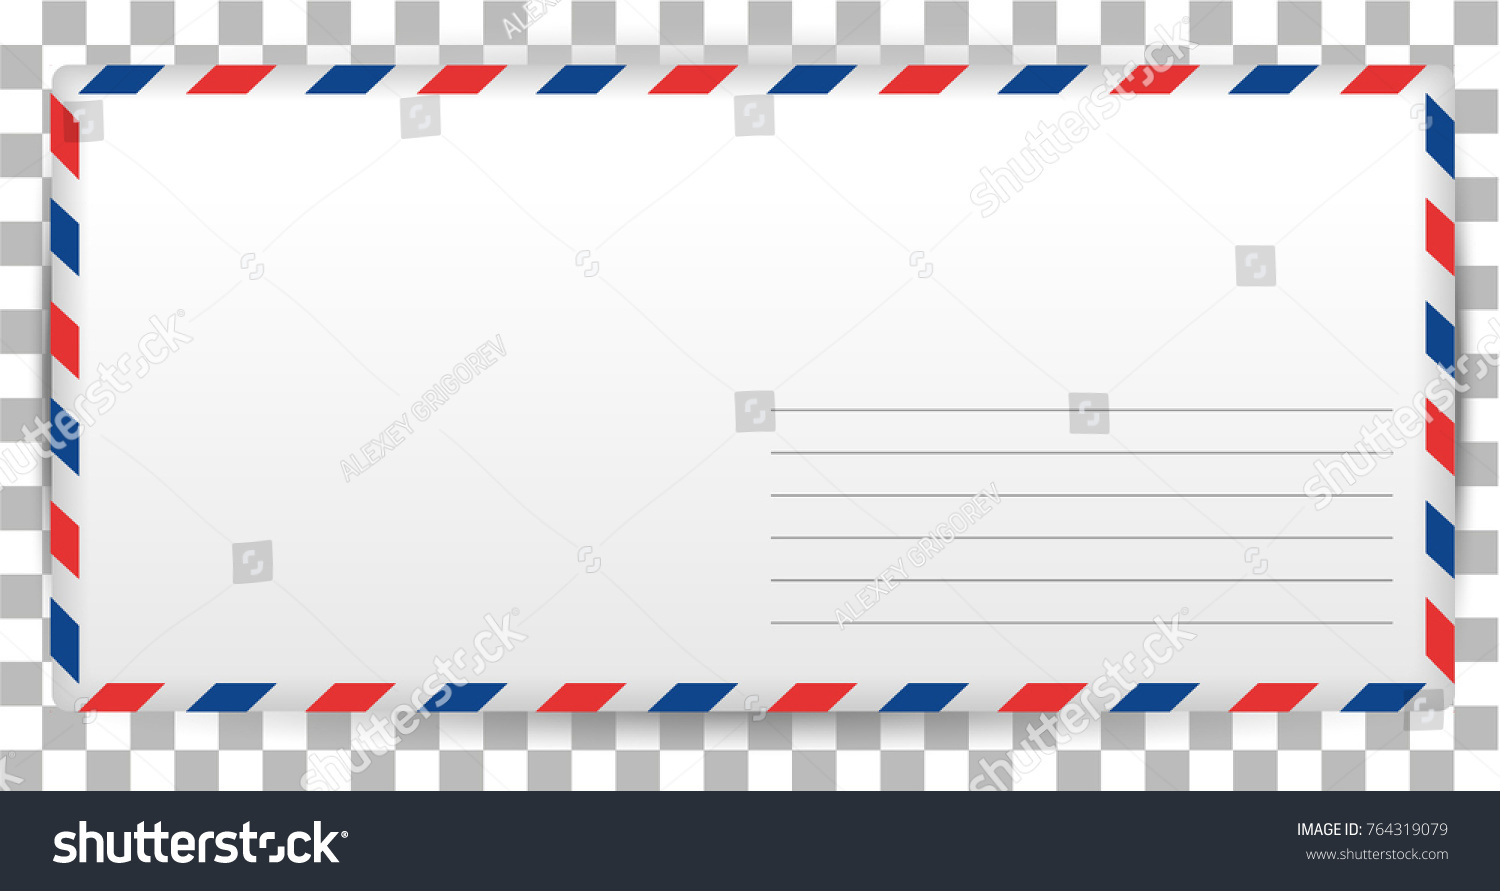 Blank Letter Template Santa Claus On Stock Vector (Royalty Free ...